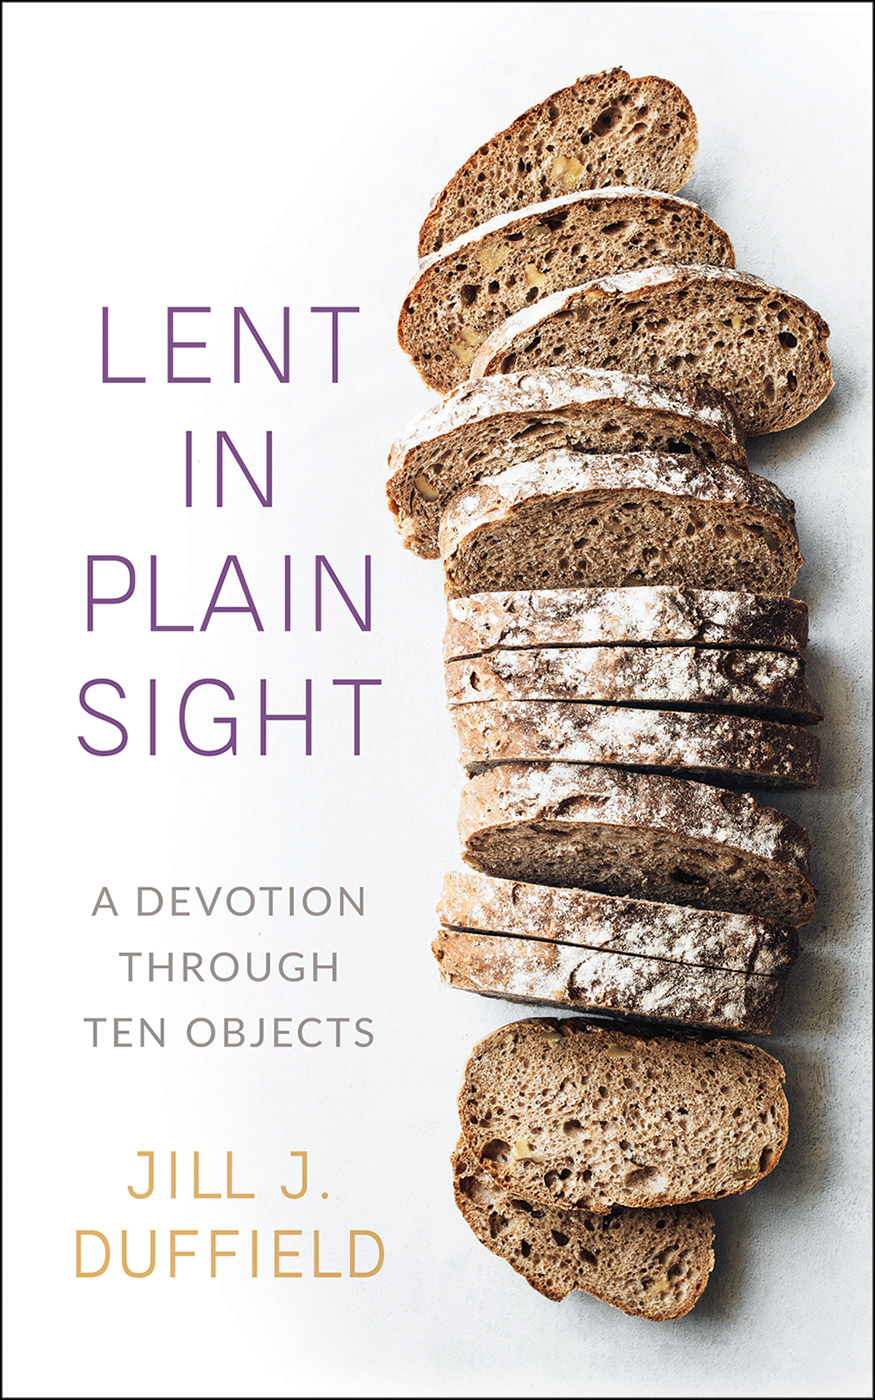 Lent in Plain Sight